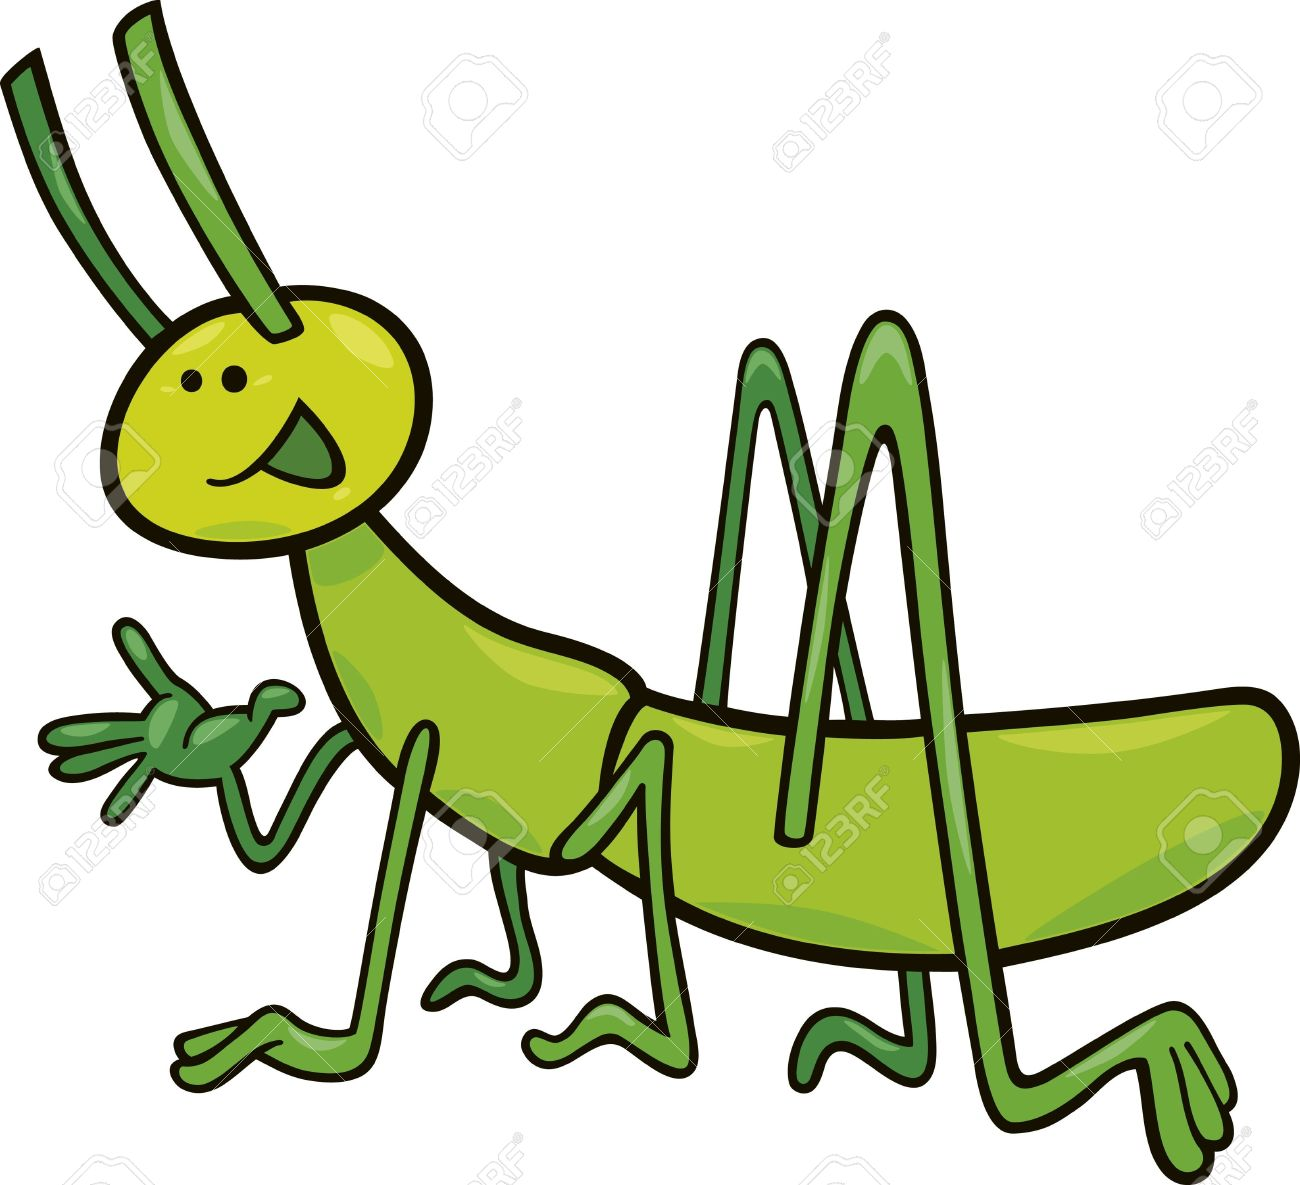 Cricket clipart insect 4 » Clipart Station.